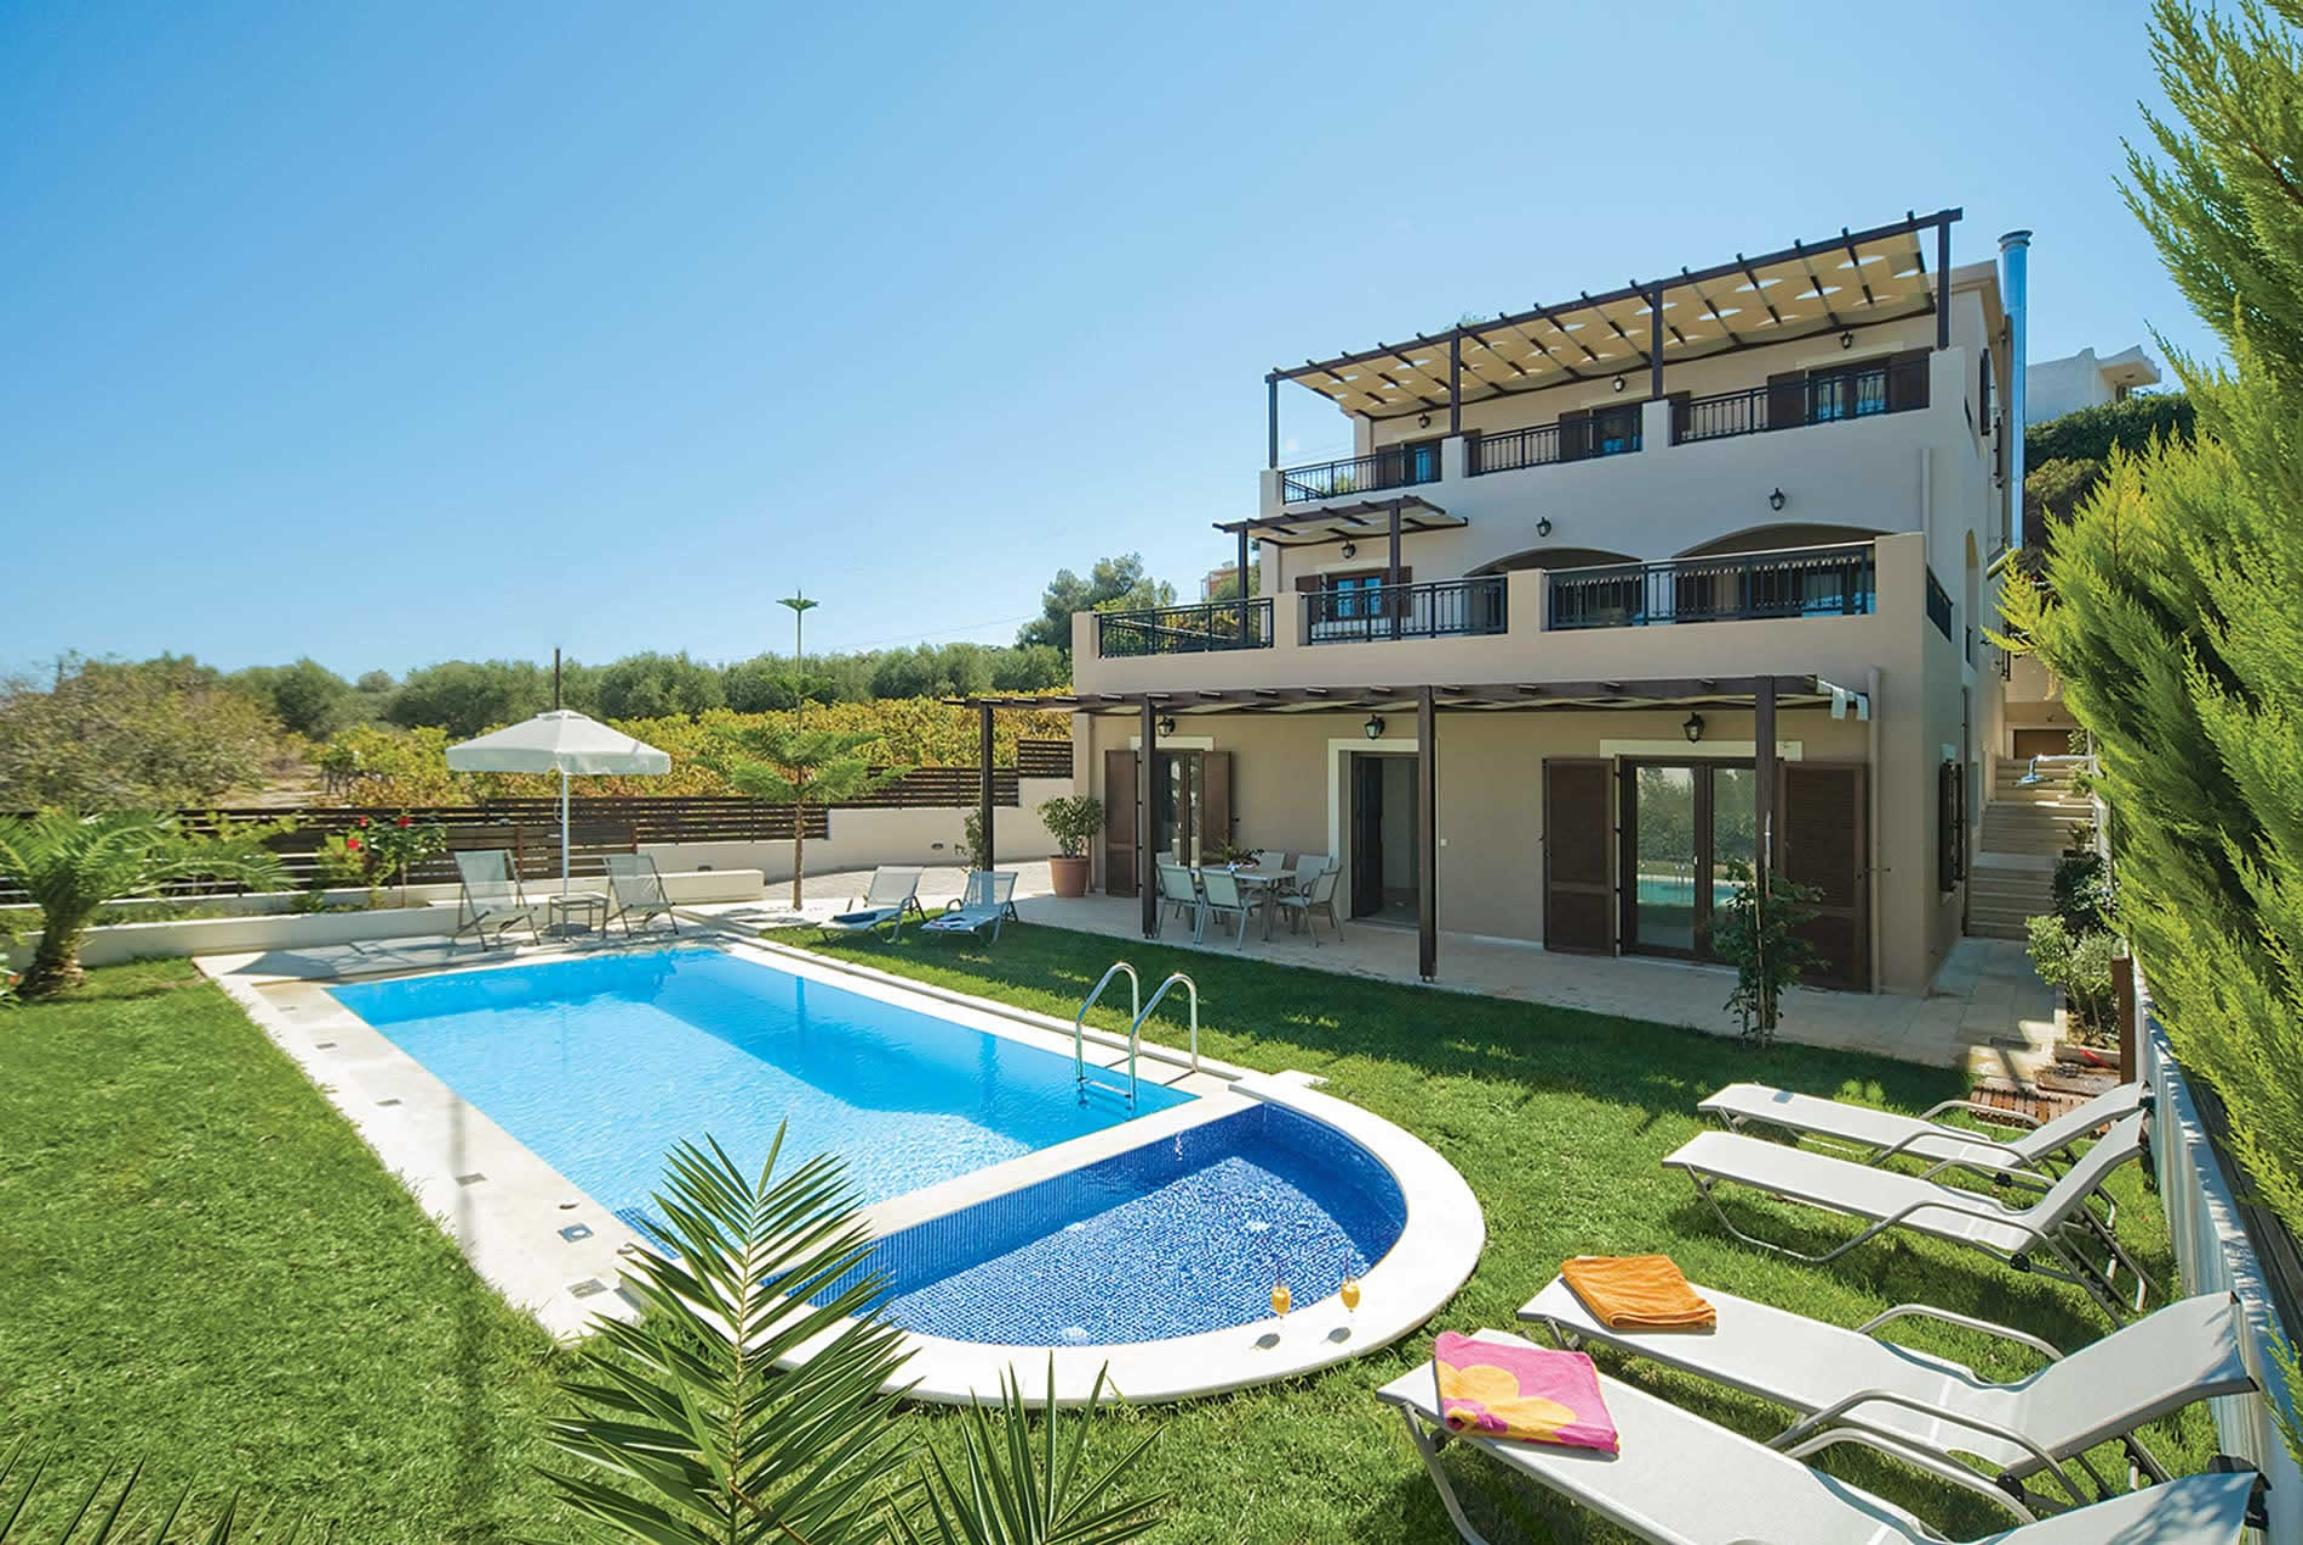 Read more about Orsalia villa